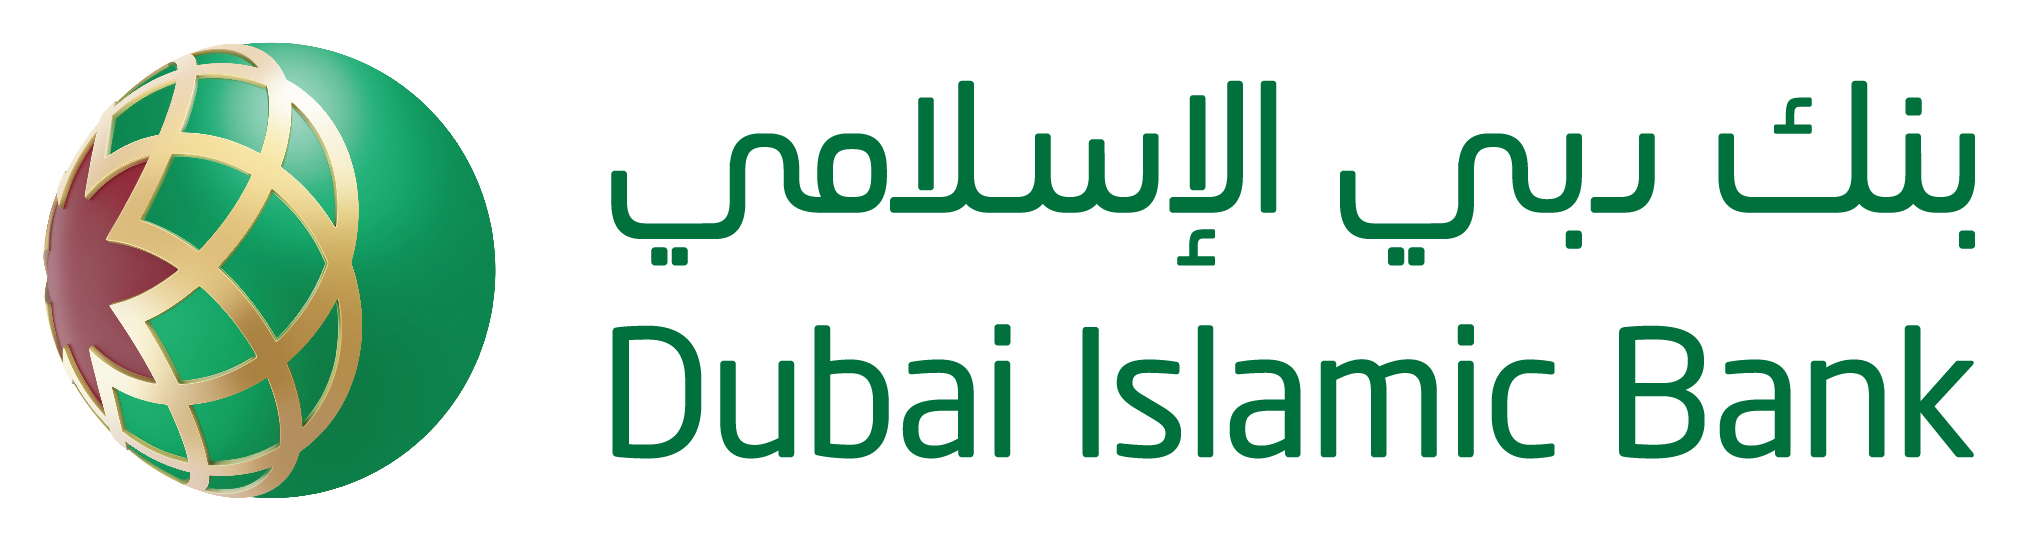 Dubai Islamic Bank - Al Islami Business Account Plus